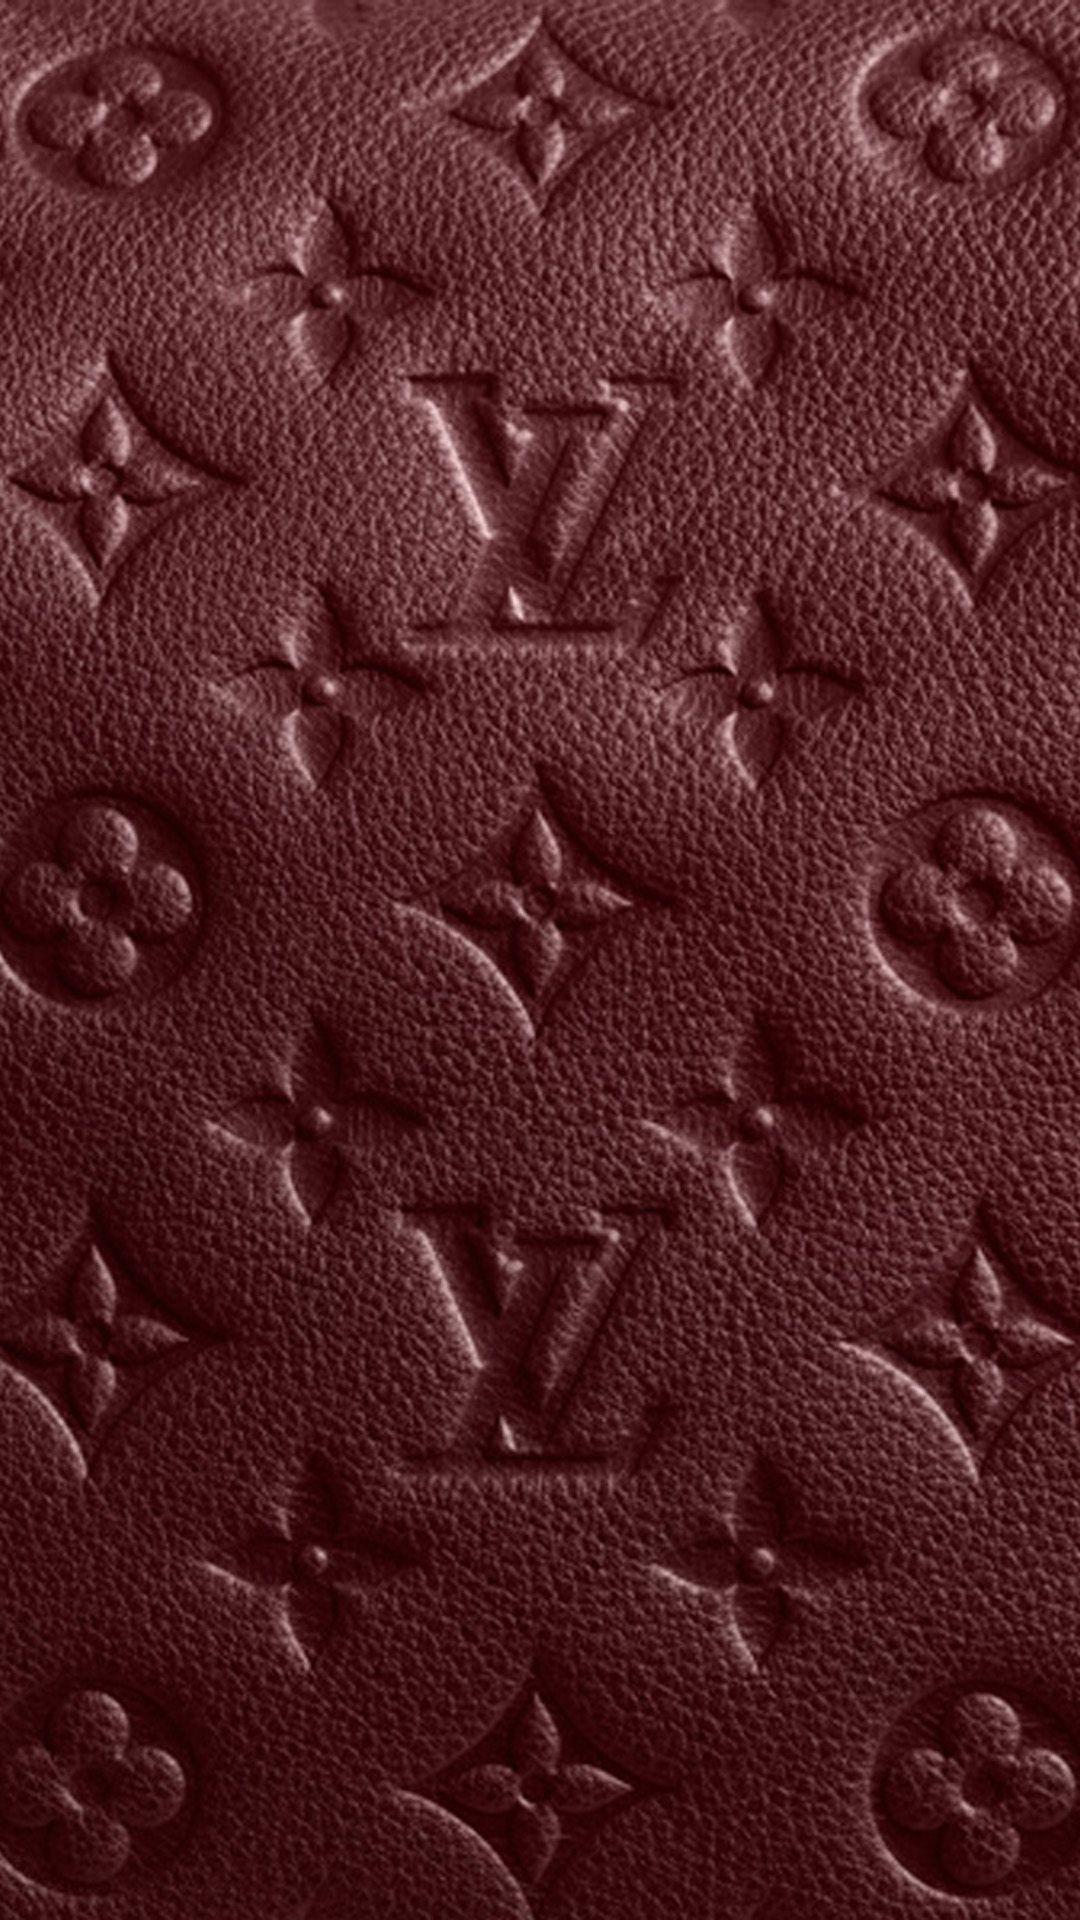 45+ Louis Vuitton Wallpapers